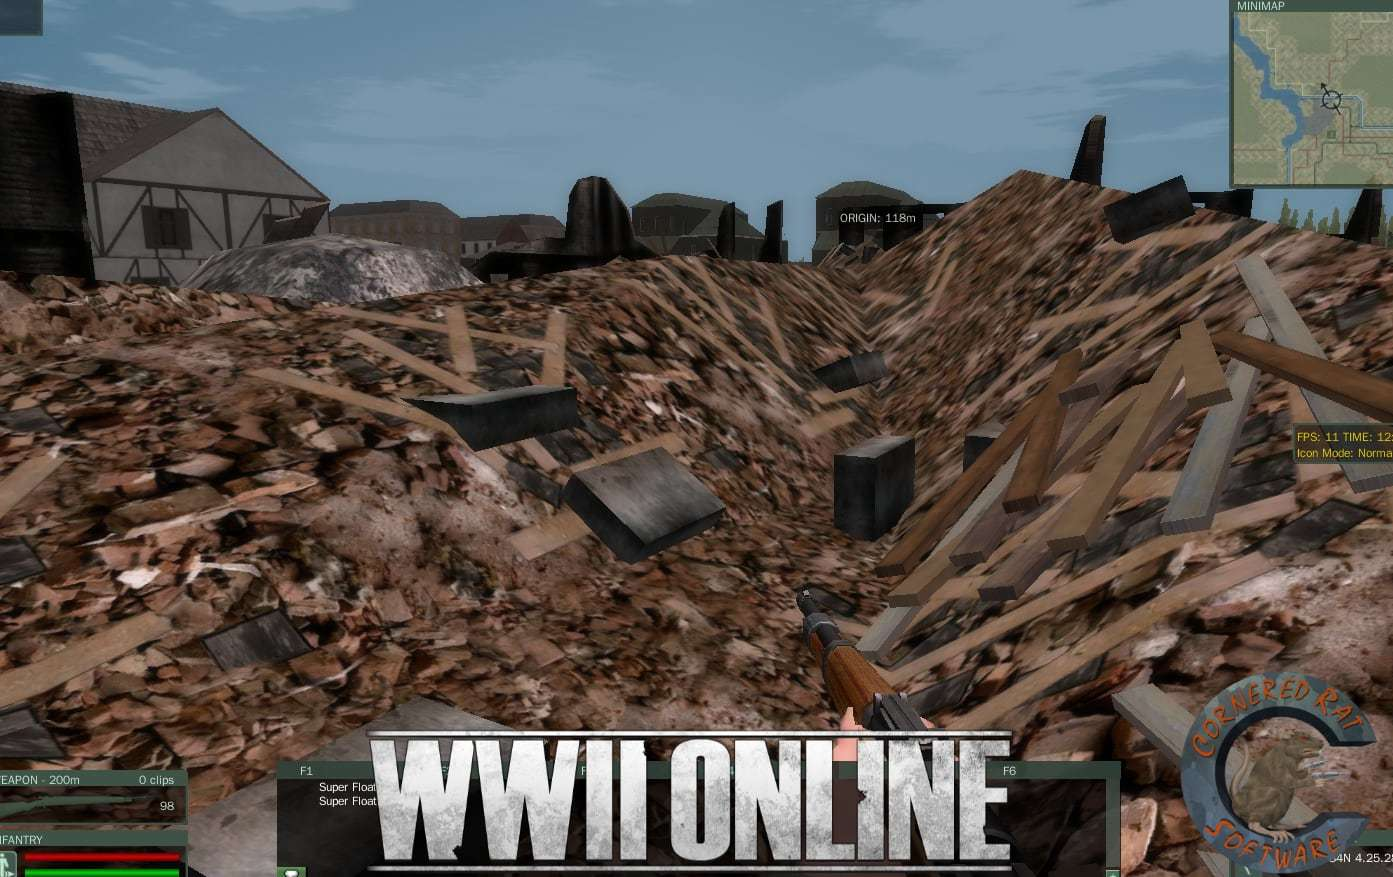 Nov 11, 2018 Production Update - Game Environment WWII